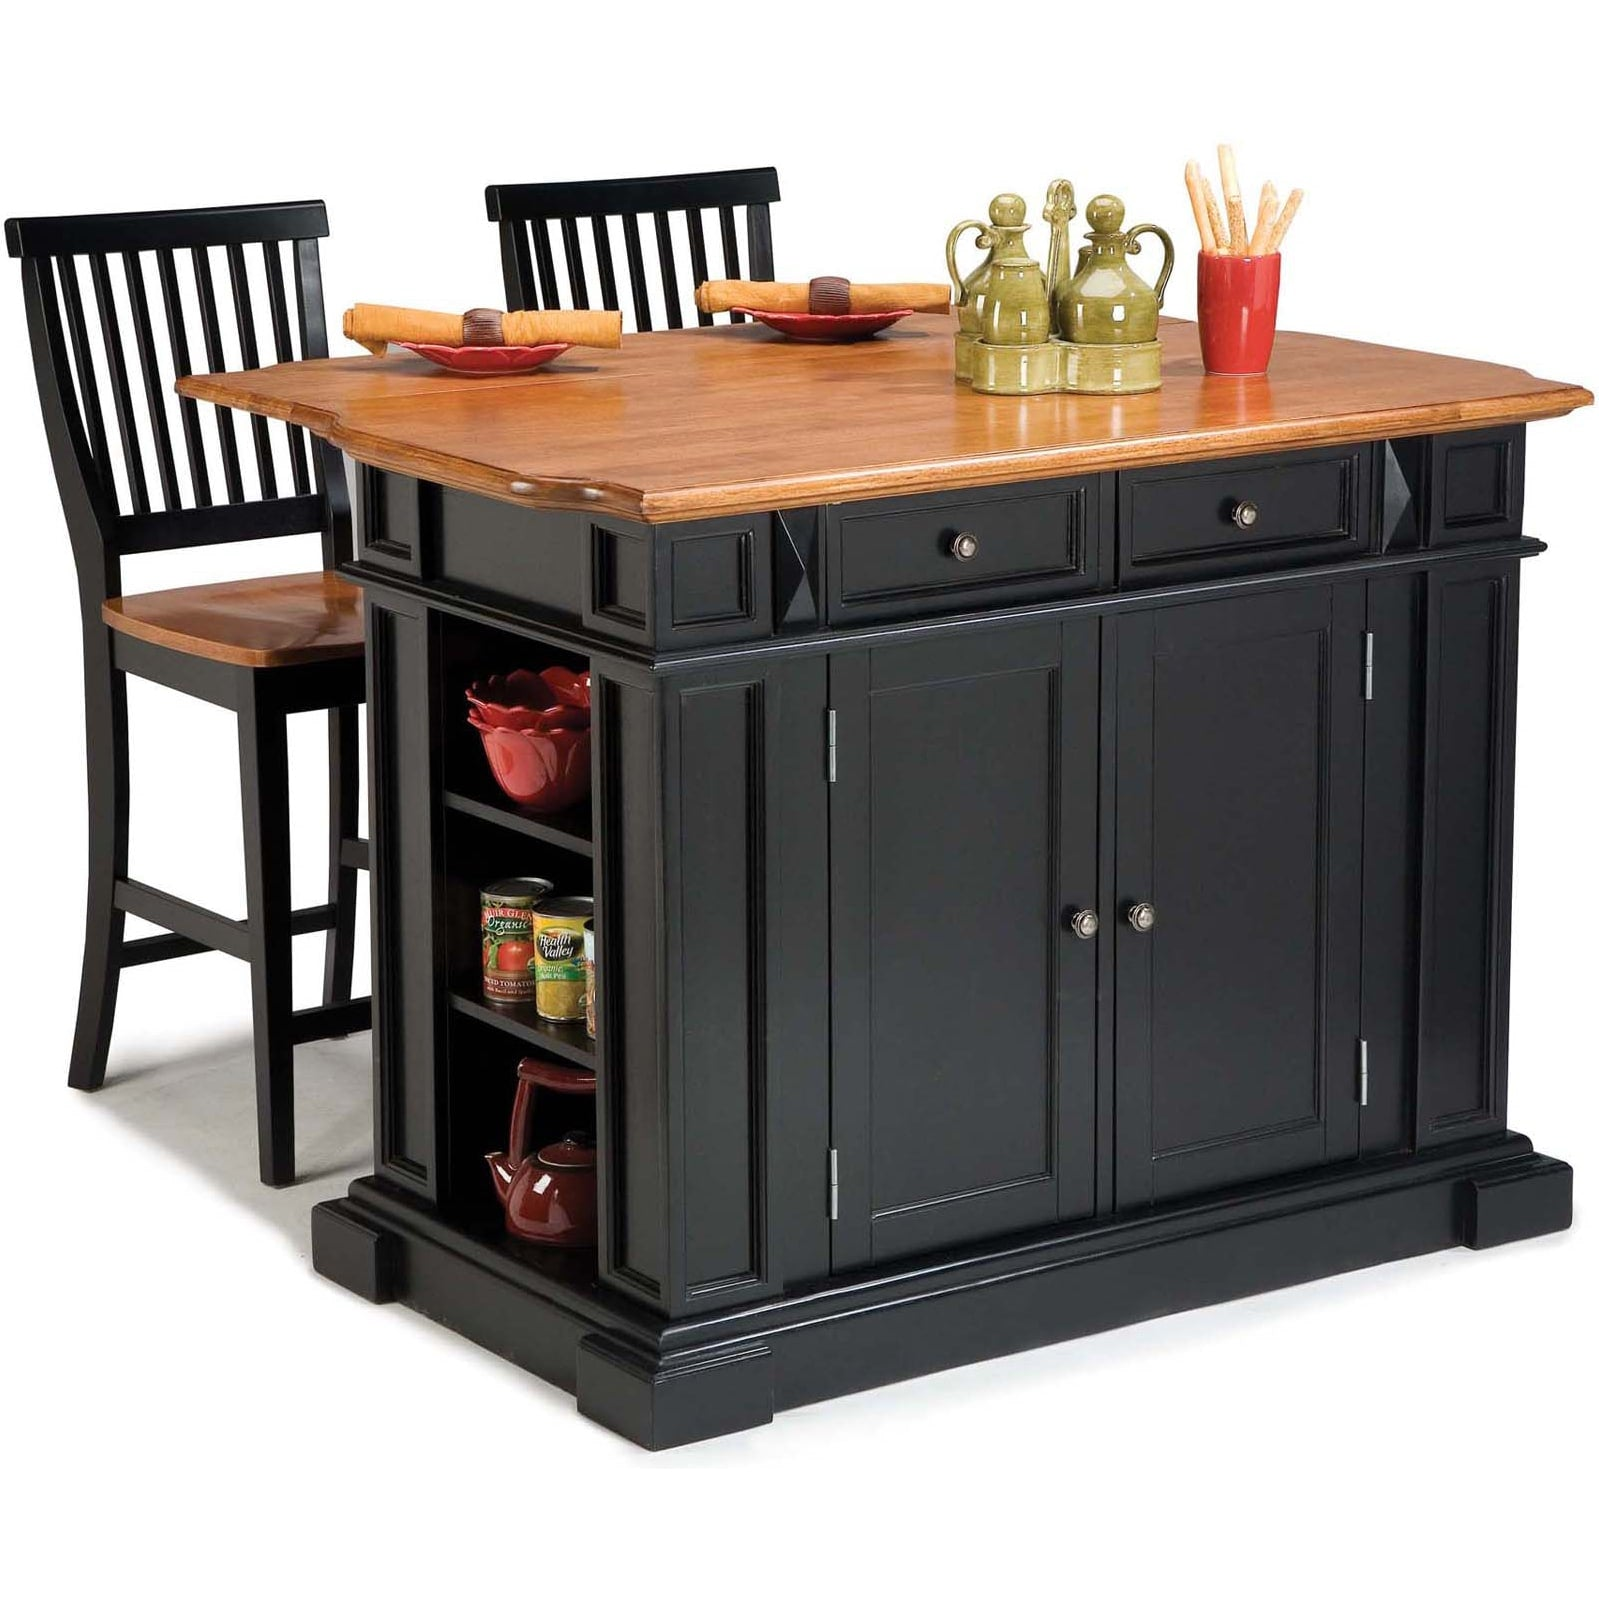 Black Distressed Oak Finish Kitchen Island and Barstools Kitchen Set